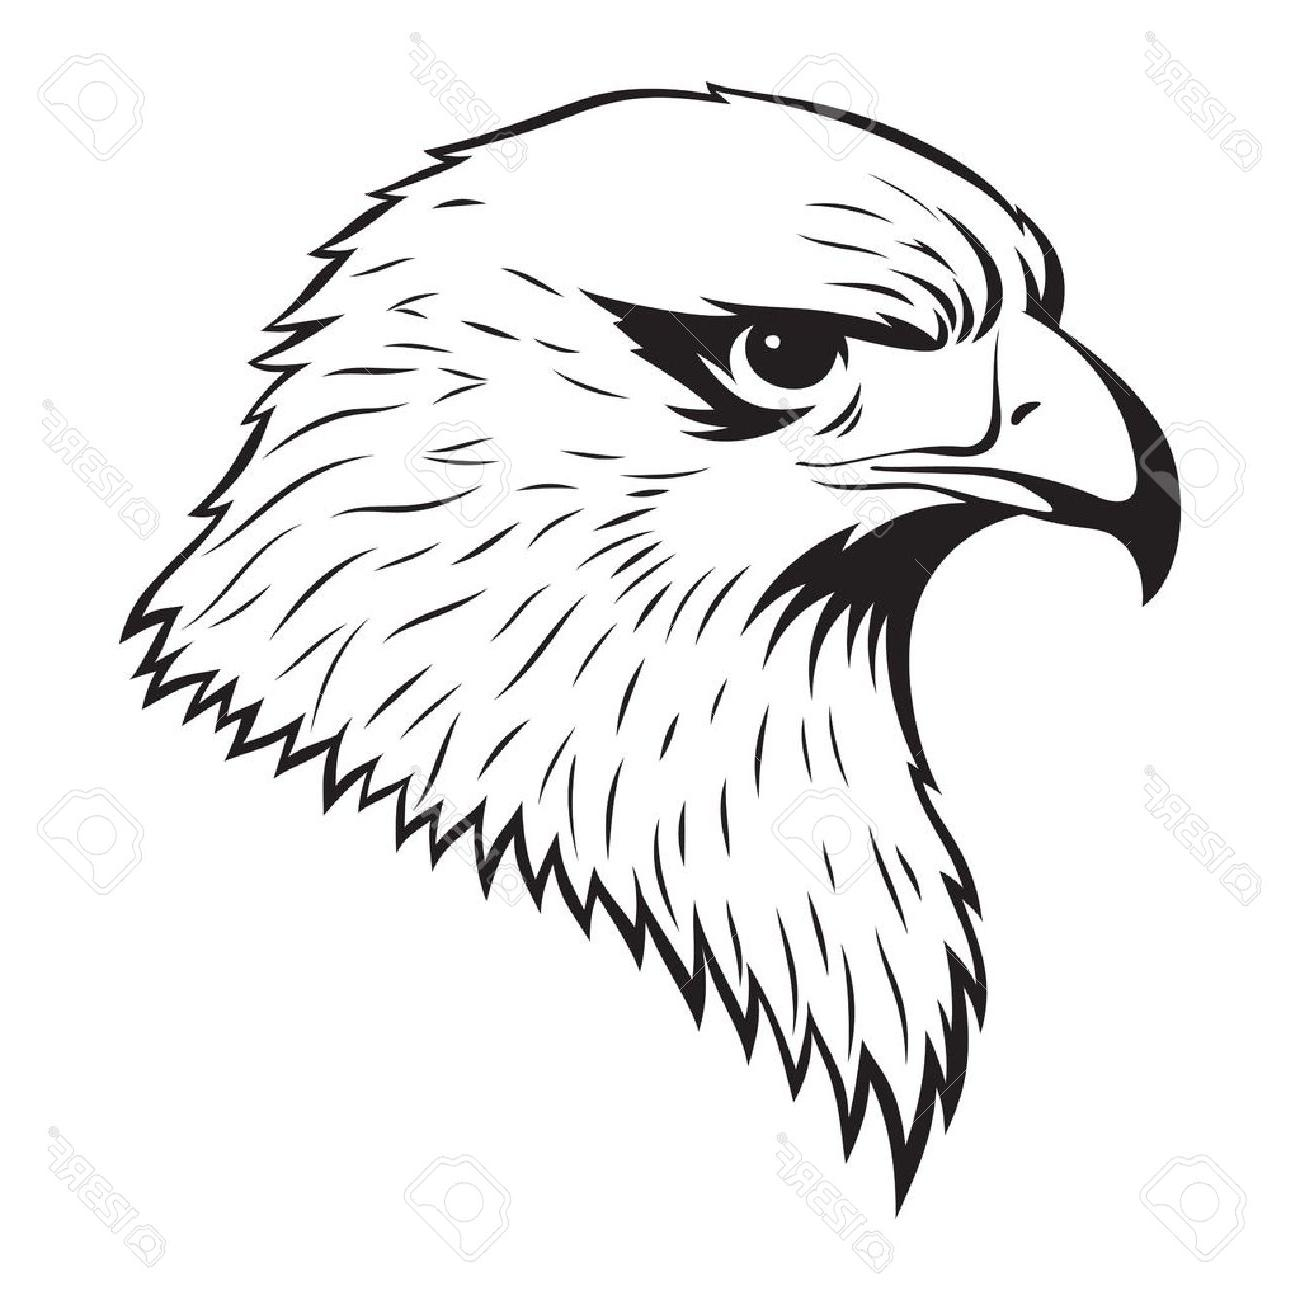 Hawk drawing step by step at getdrawings free for personal use